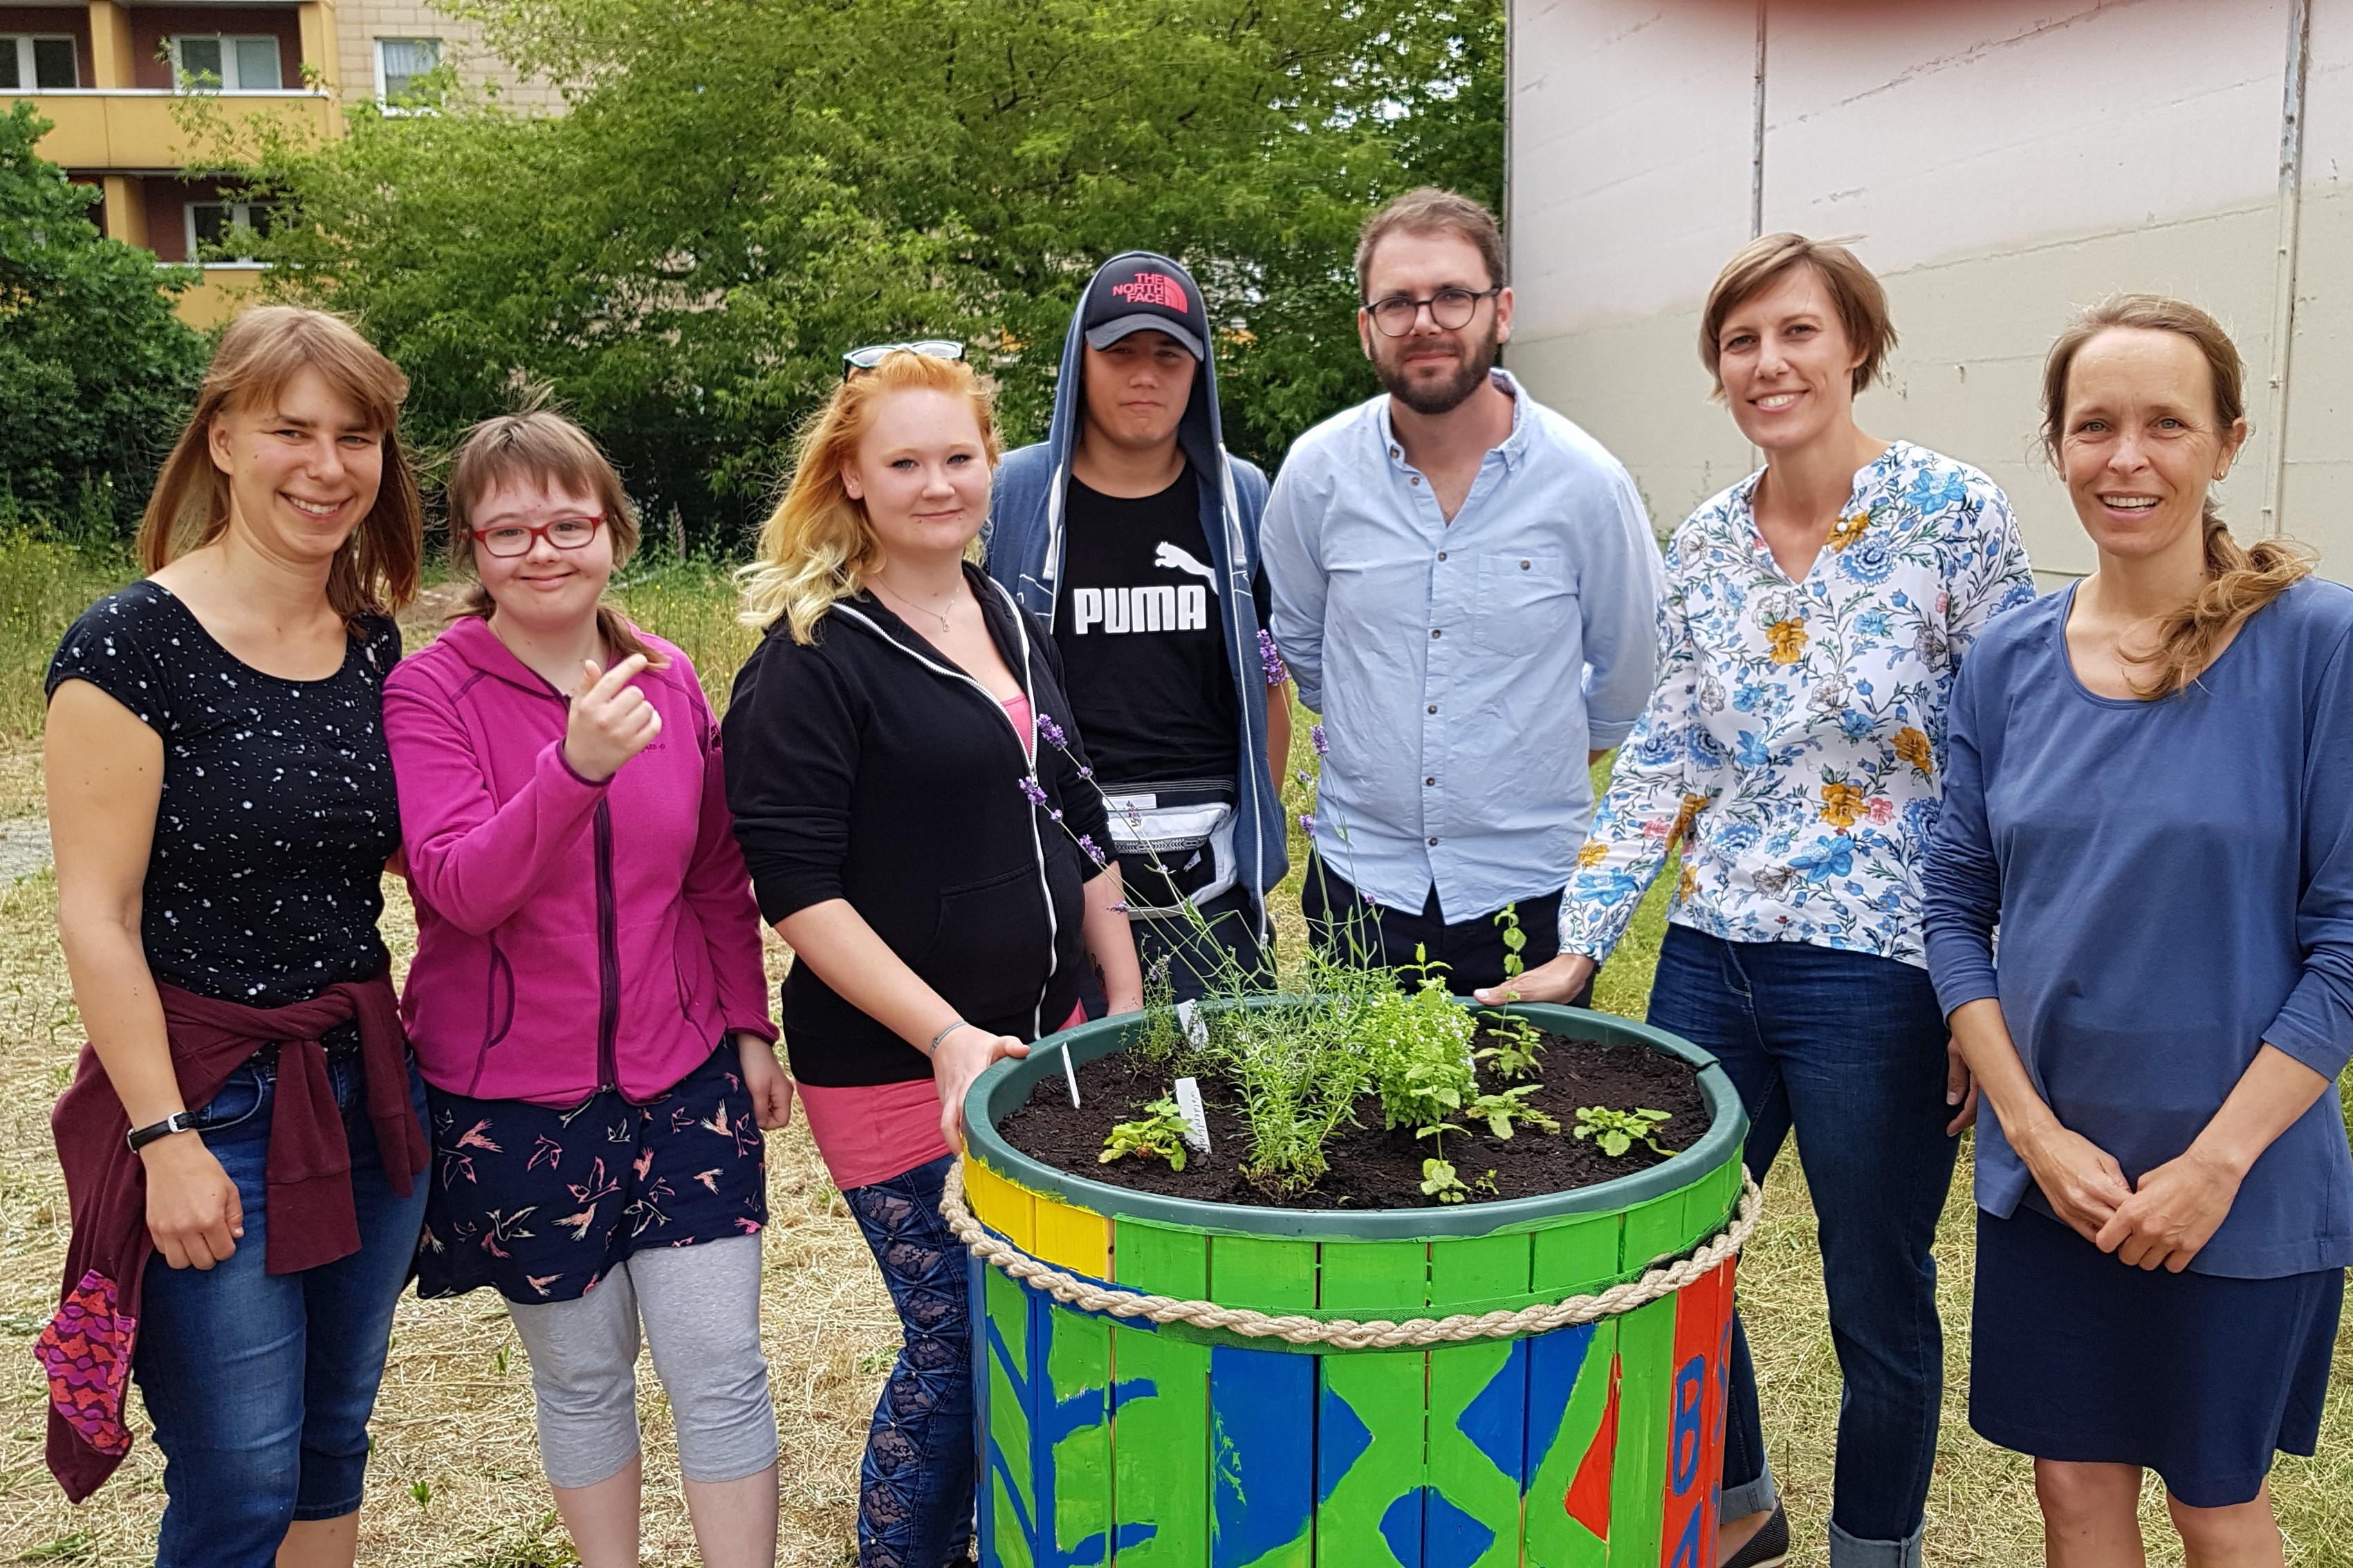 The inclusive school garden is inaugurated in Leipzig